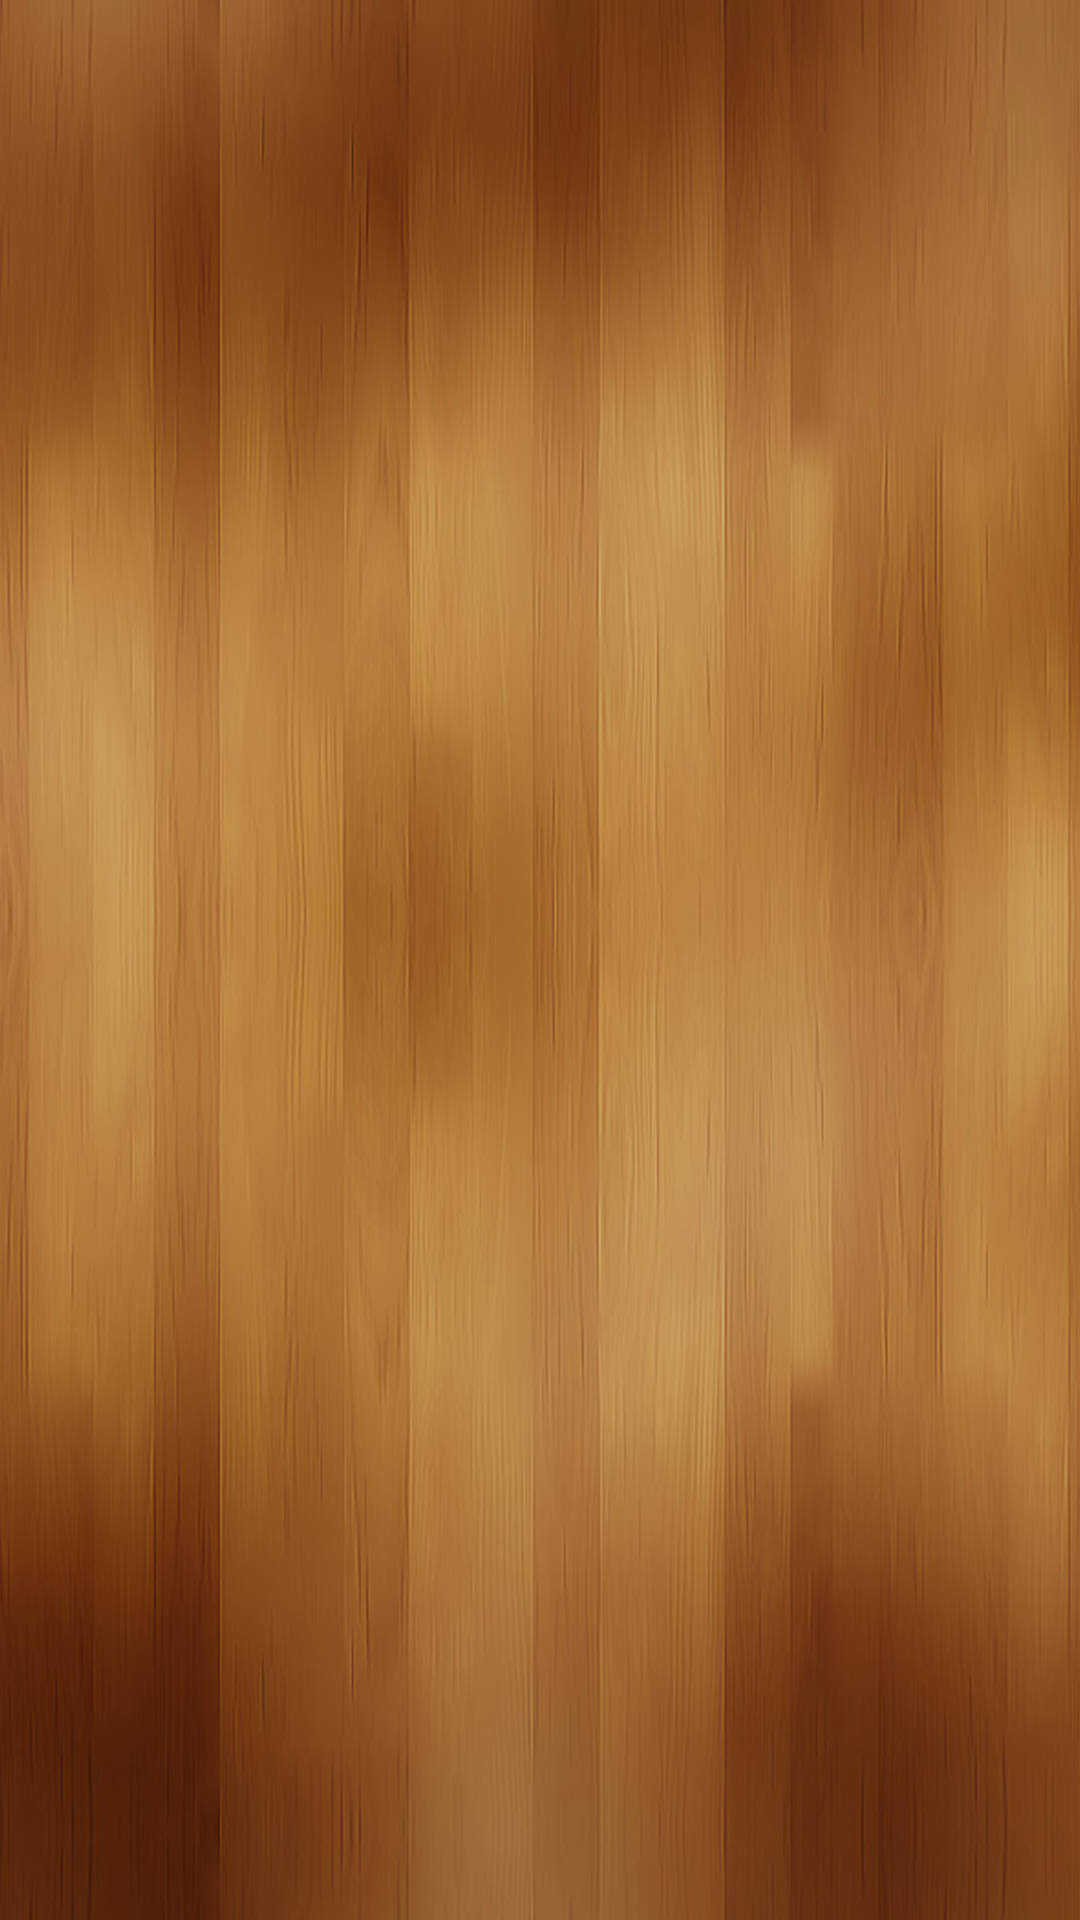 wood texture iphone wallpaper